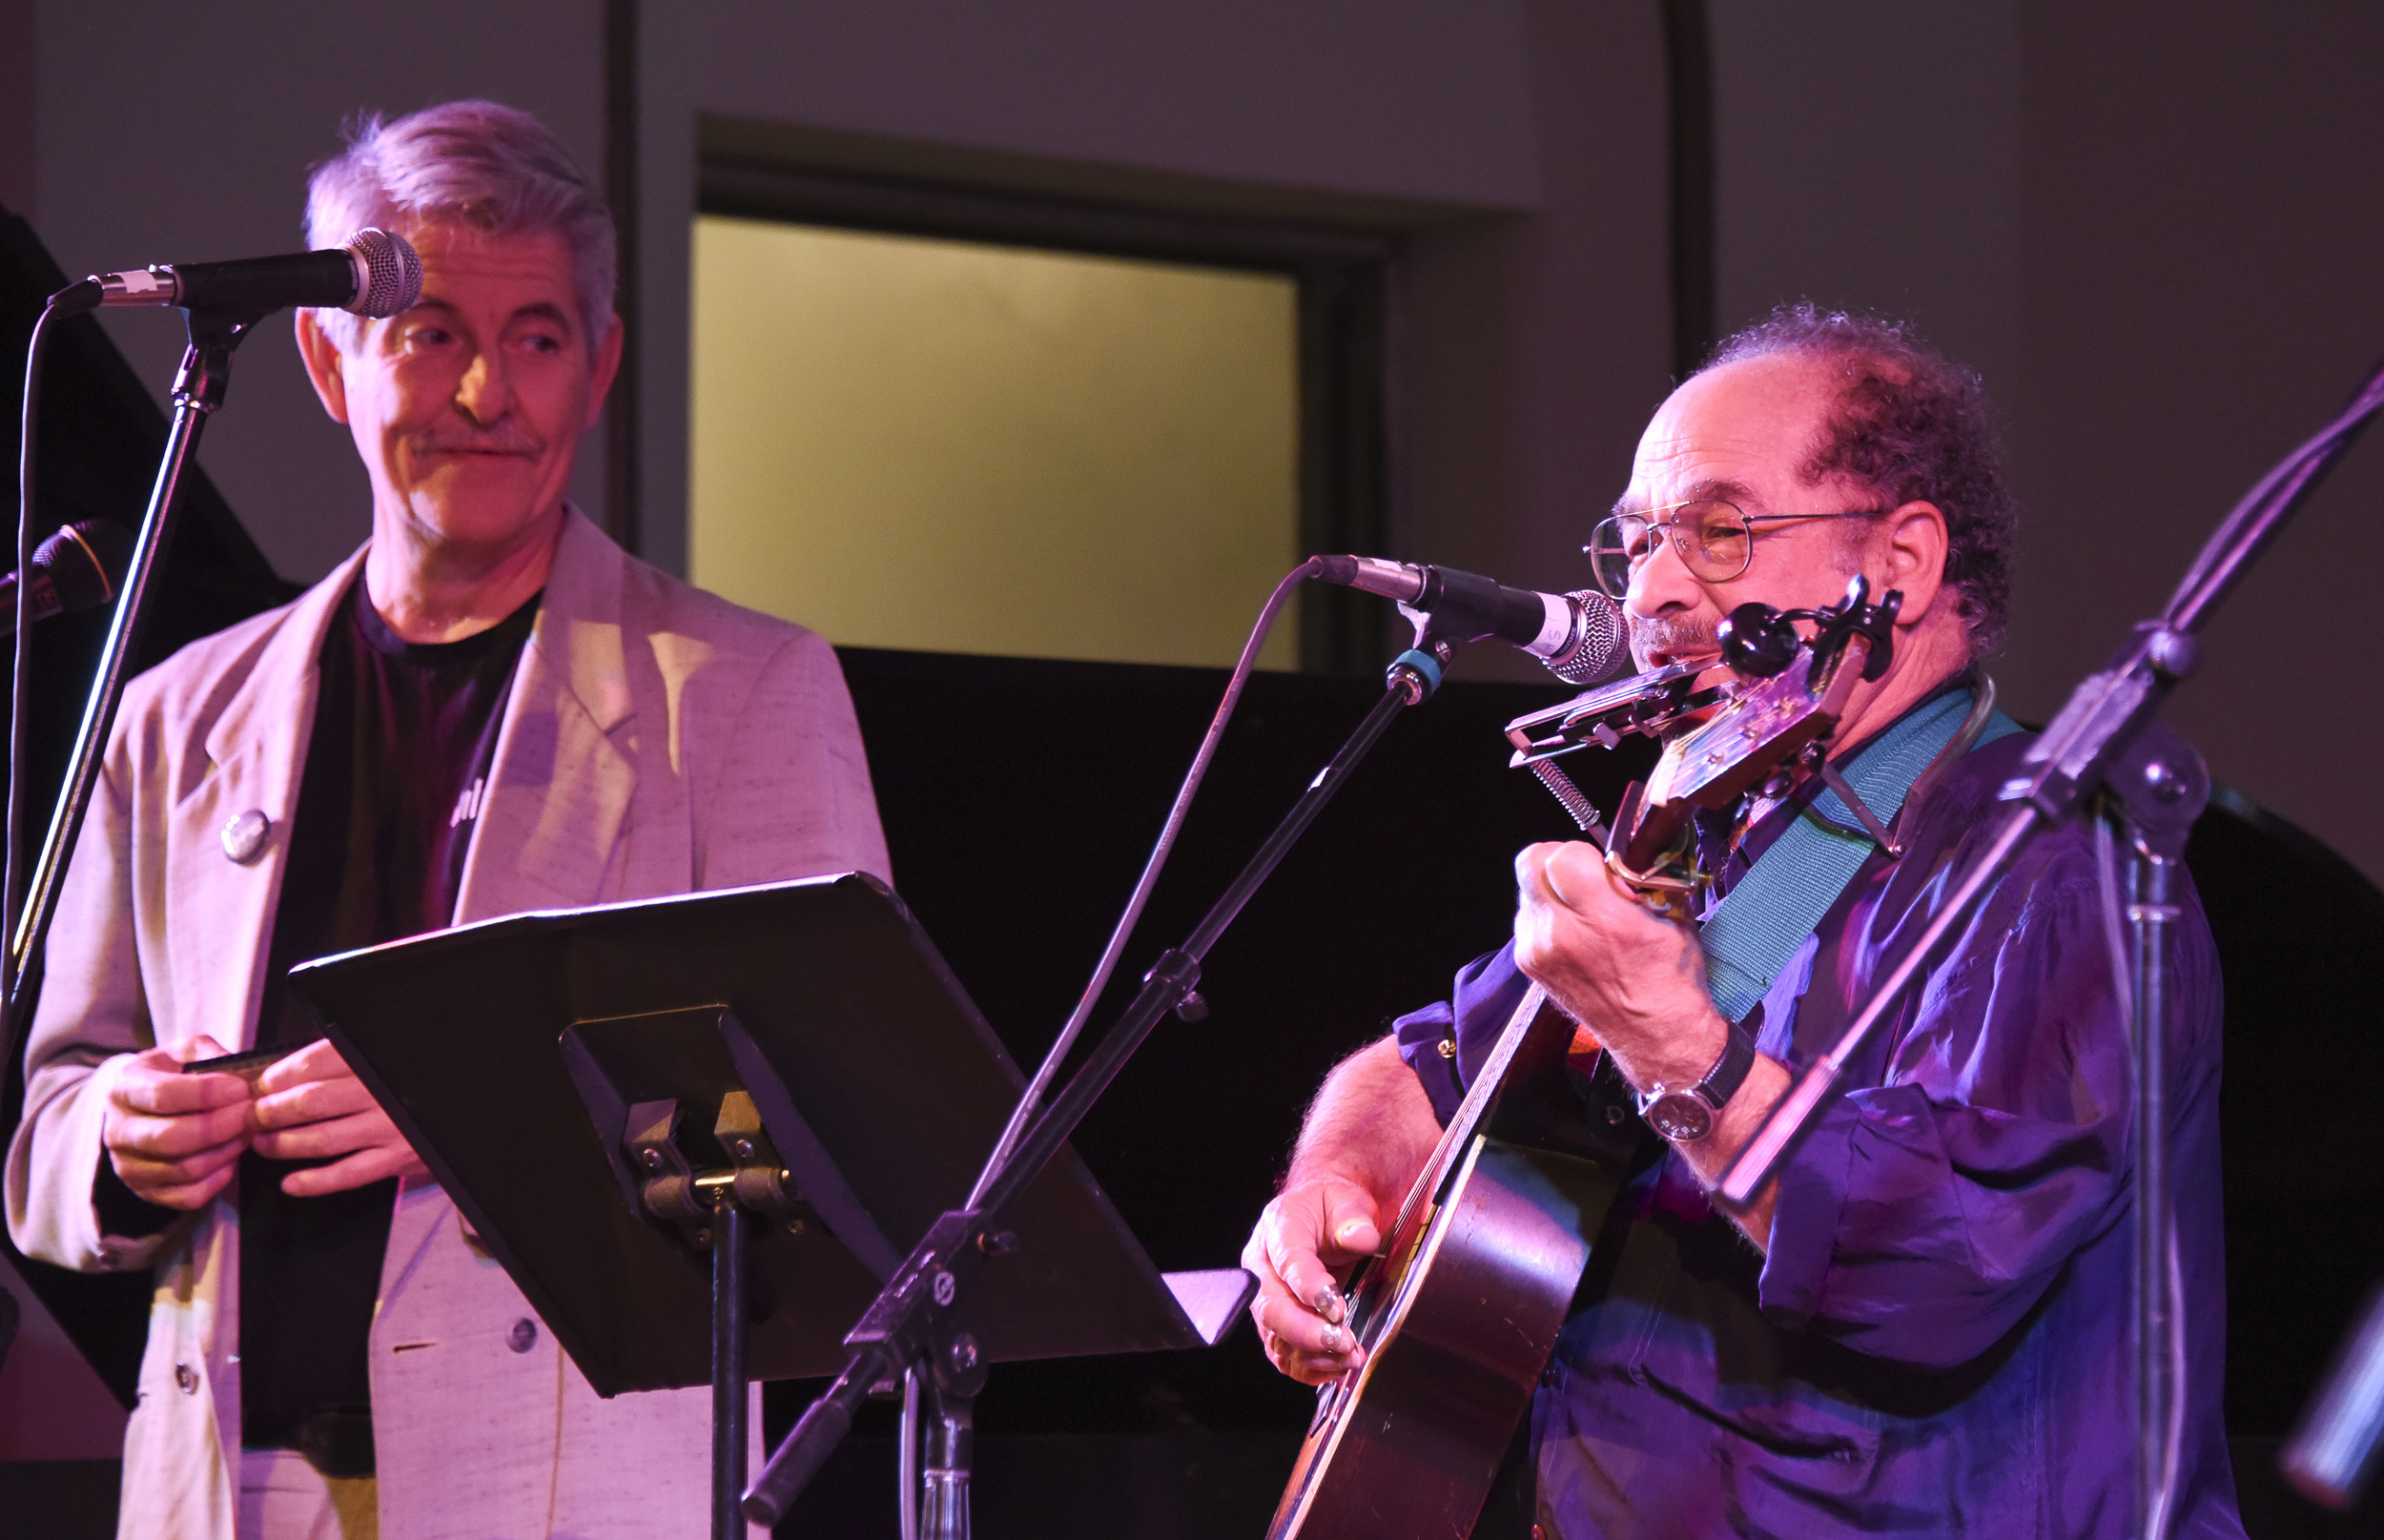 Ed Newman and Eliot Silberman / Sacred Heart Music Center / Duluth, Minnesota / May 23rd, 2015 / Photo by Michael K. Anderson